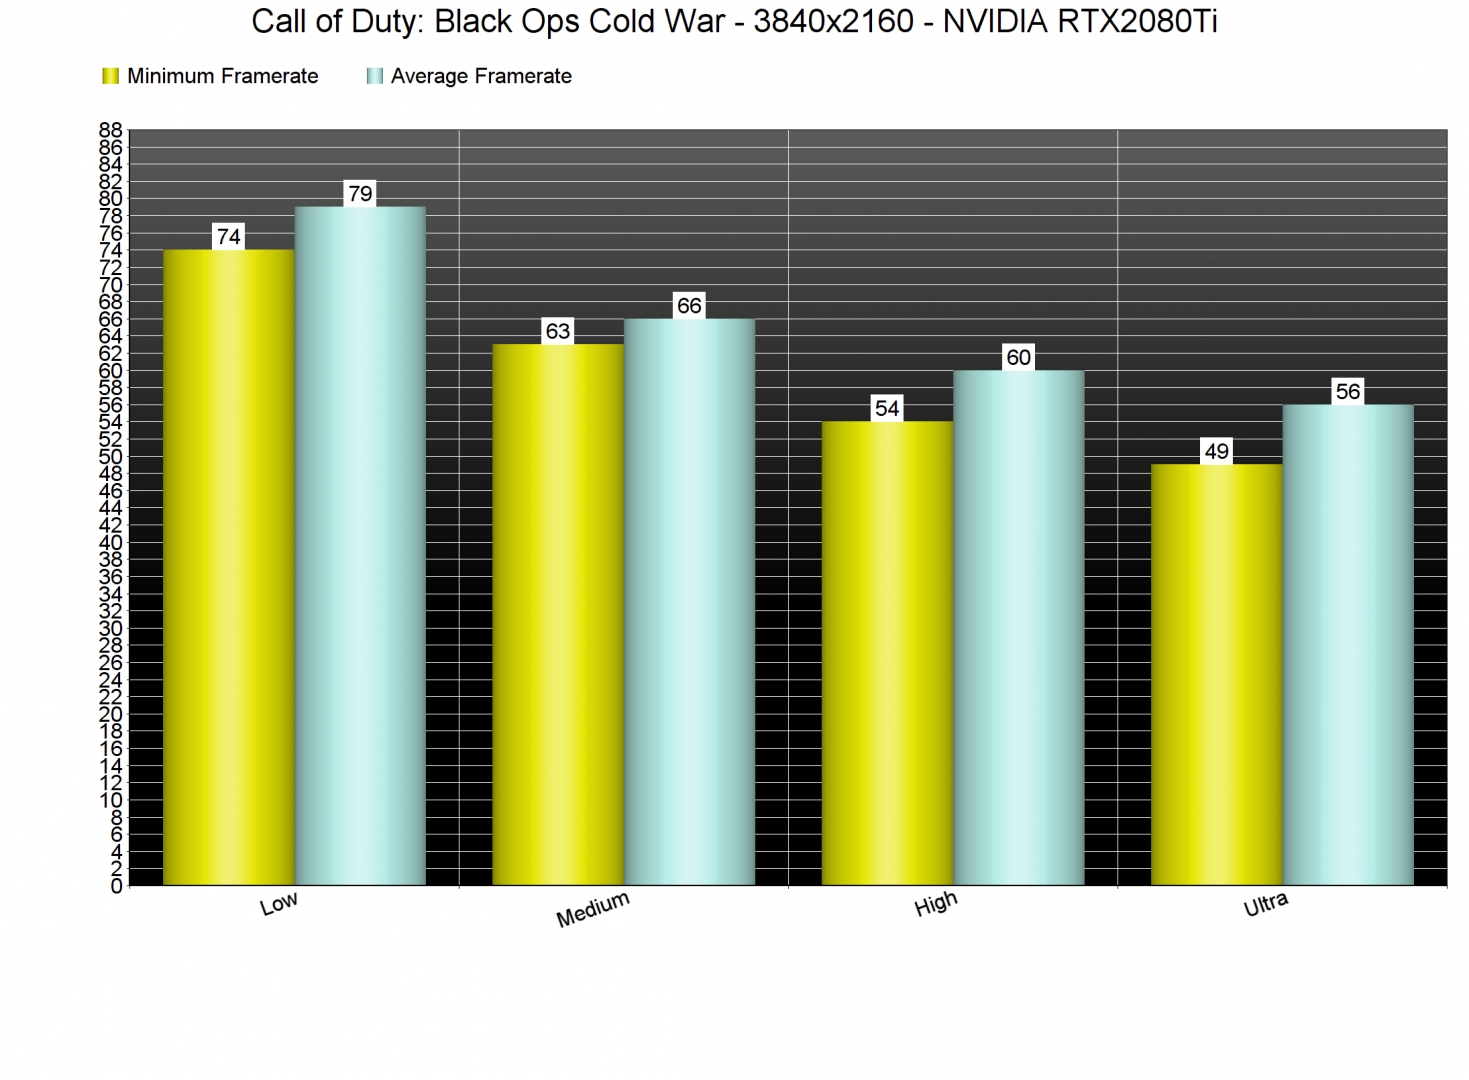 Call of Duty Black Ops Cold War graphics settings benchmarks